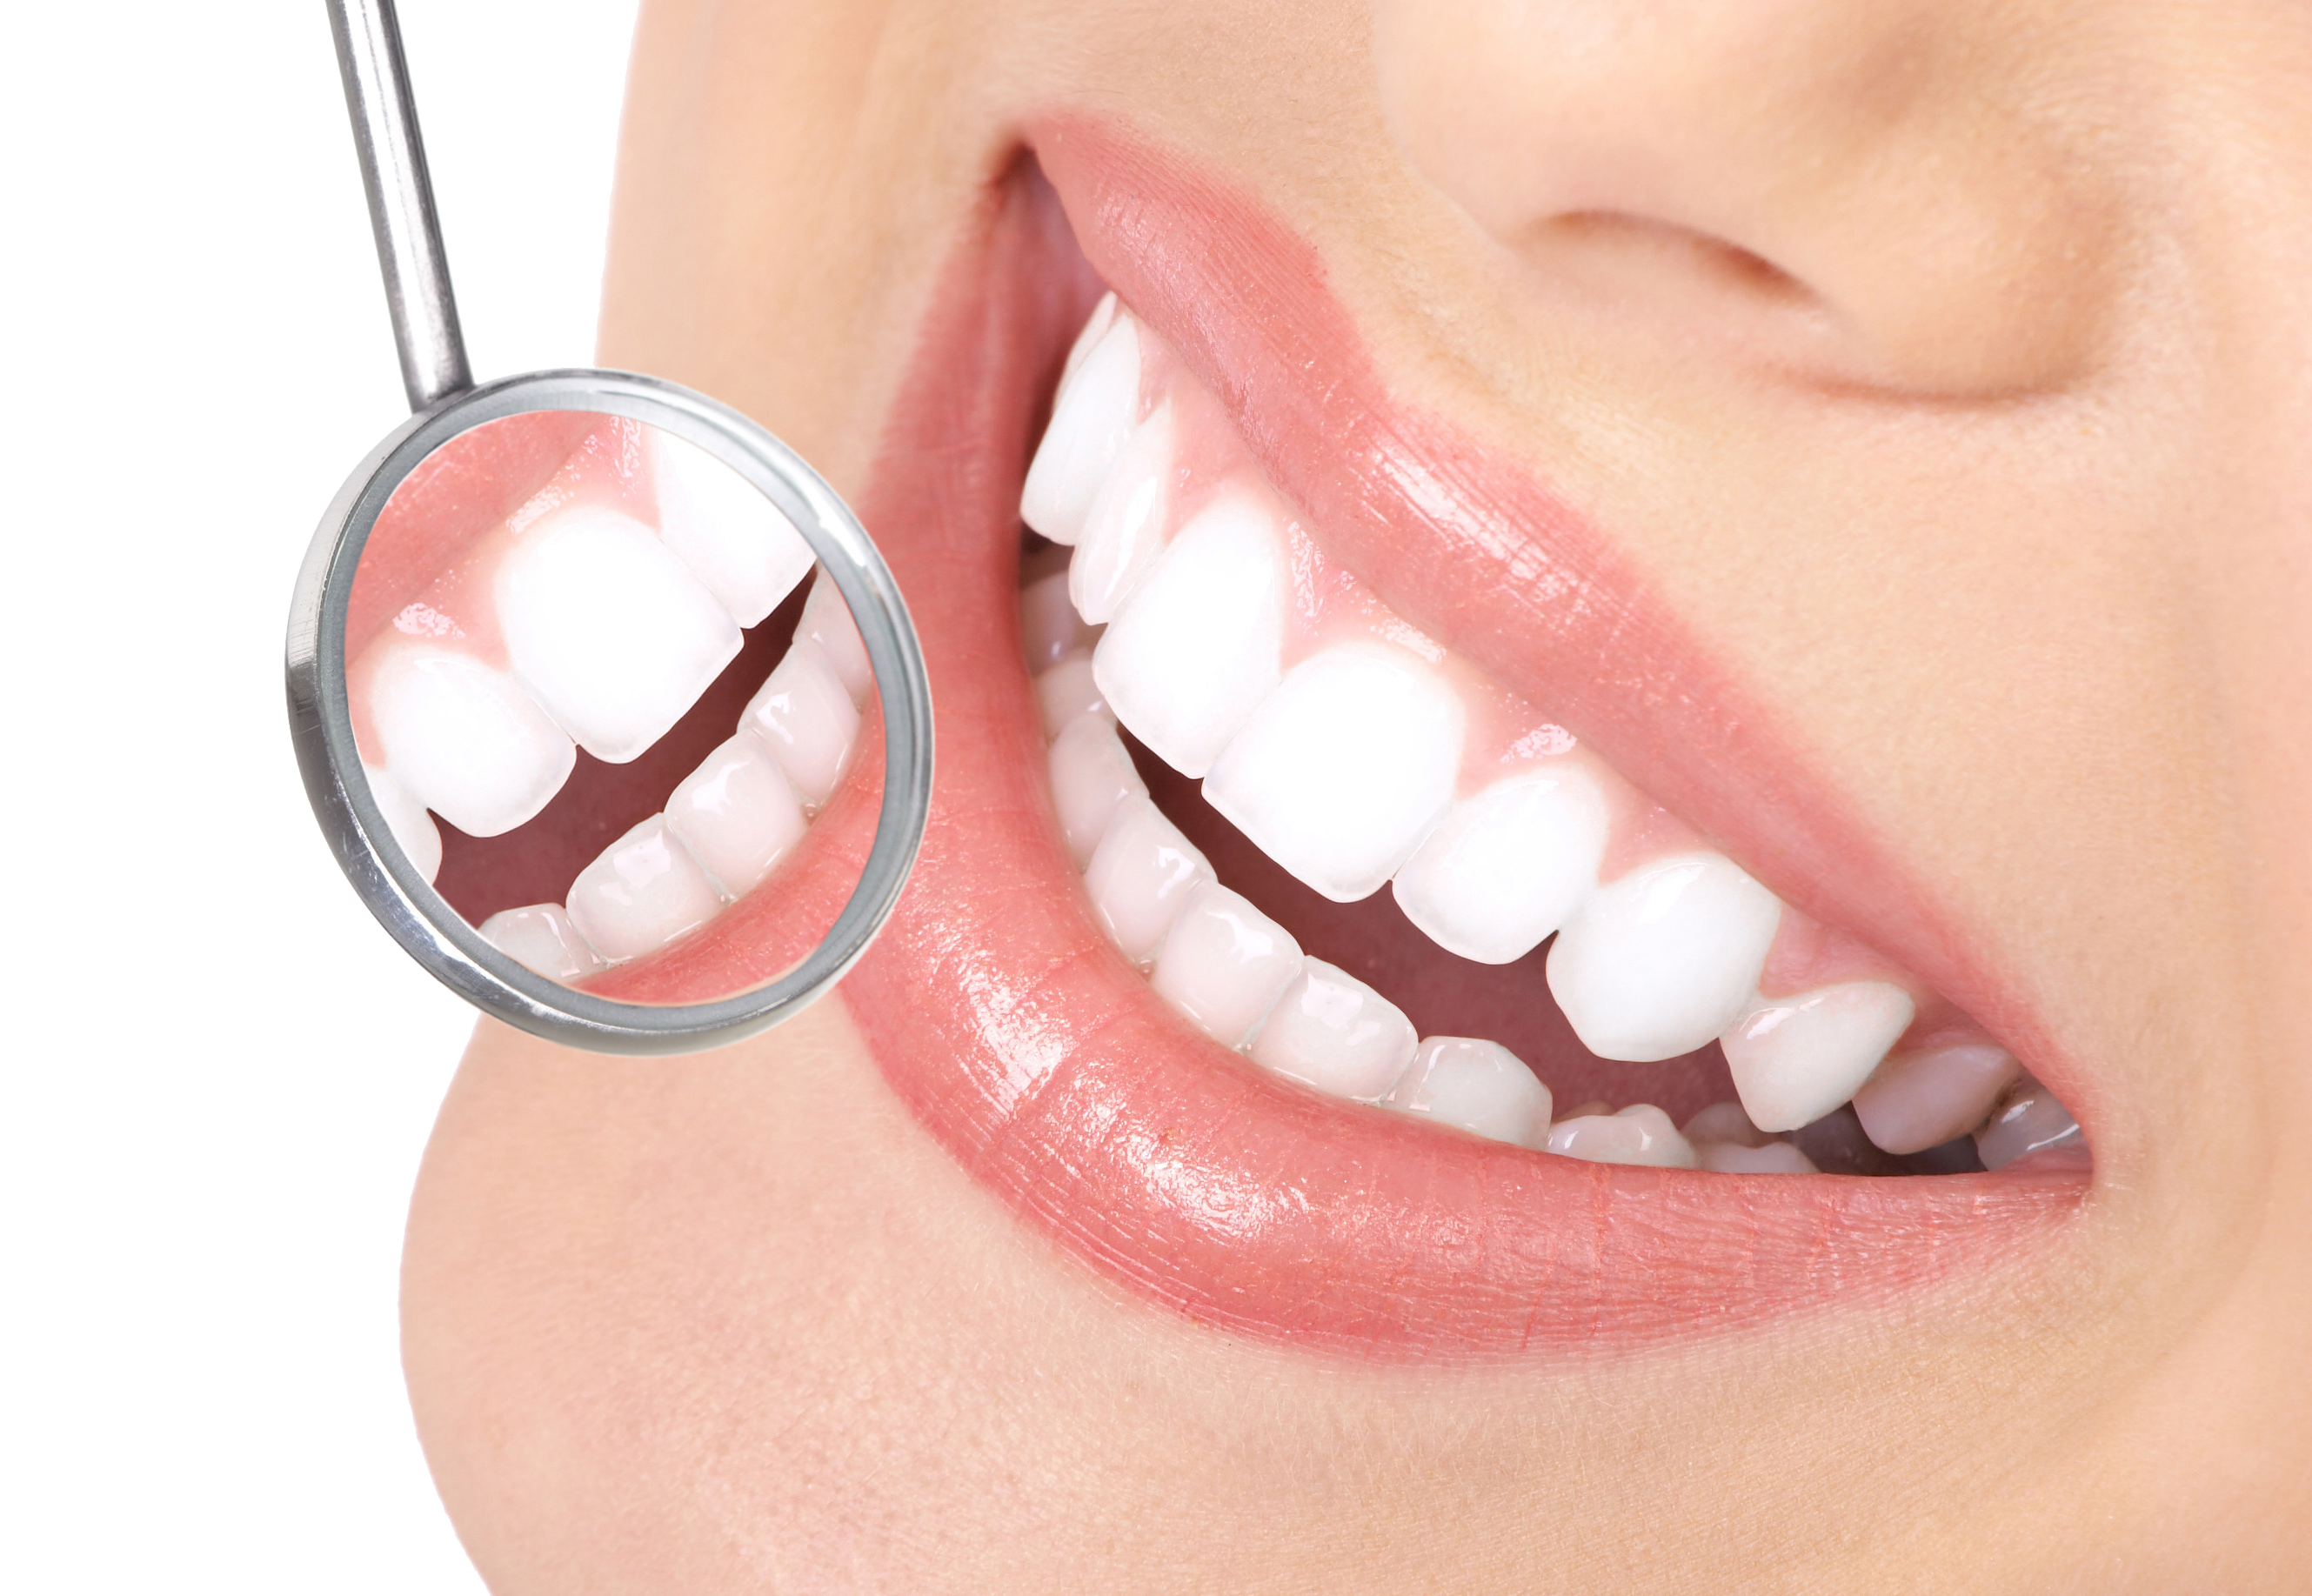 Family Dental Plan - What You Need to Know